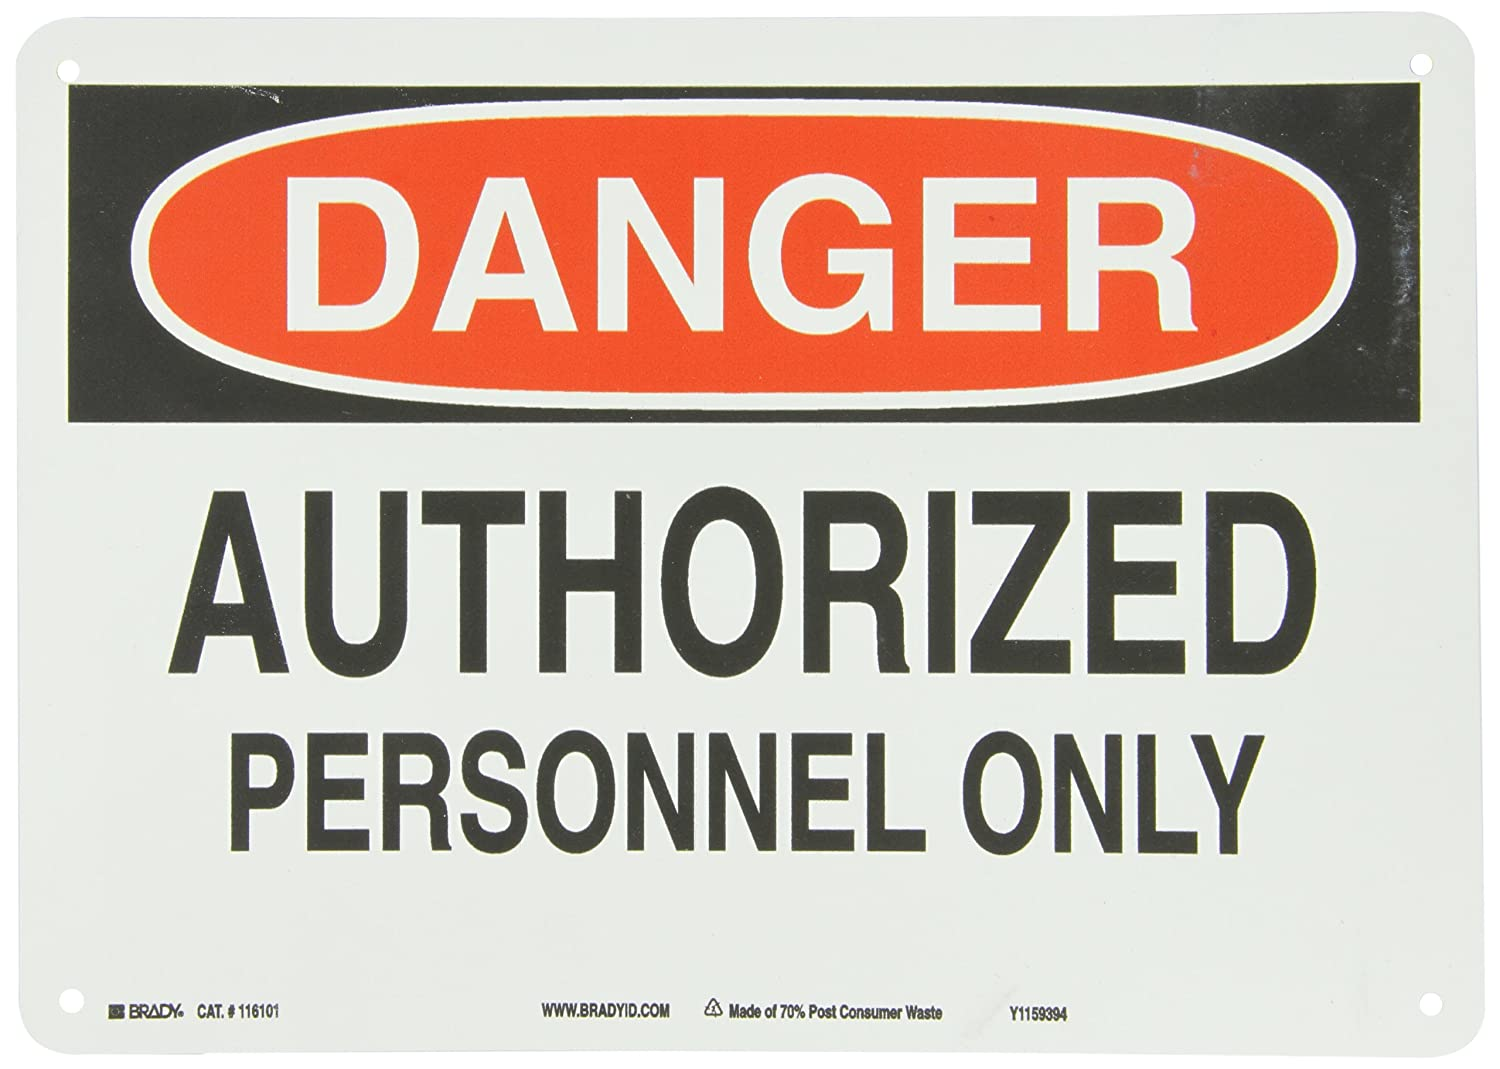 Brady 116101 14 Width x 10 Height B-563 Plastic, Red And Black On White Color Sustainable Safety Sign, Legend Danger Authorized Personnel Only